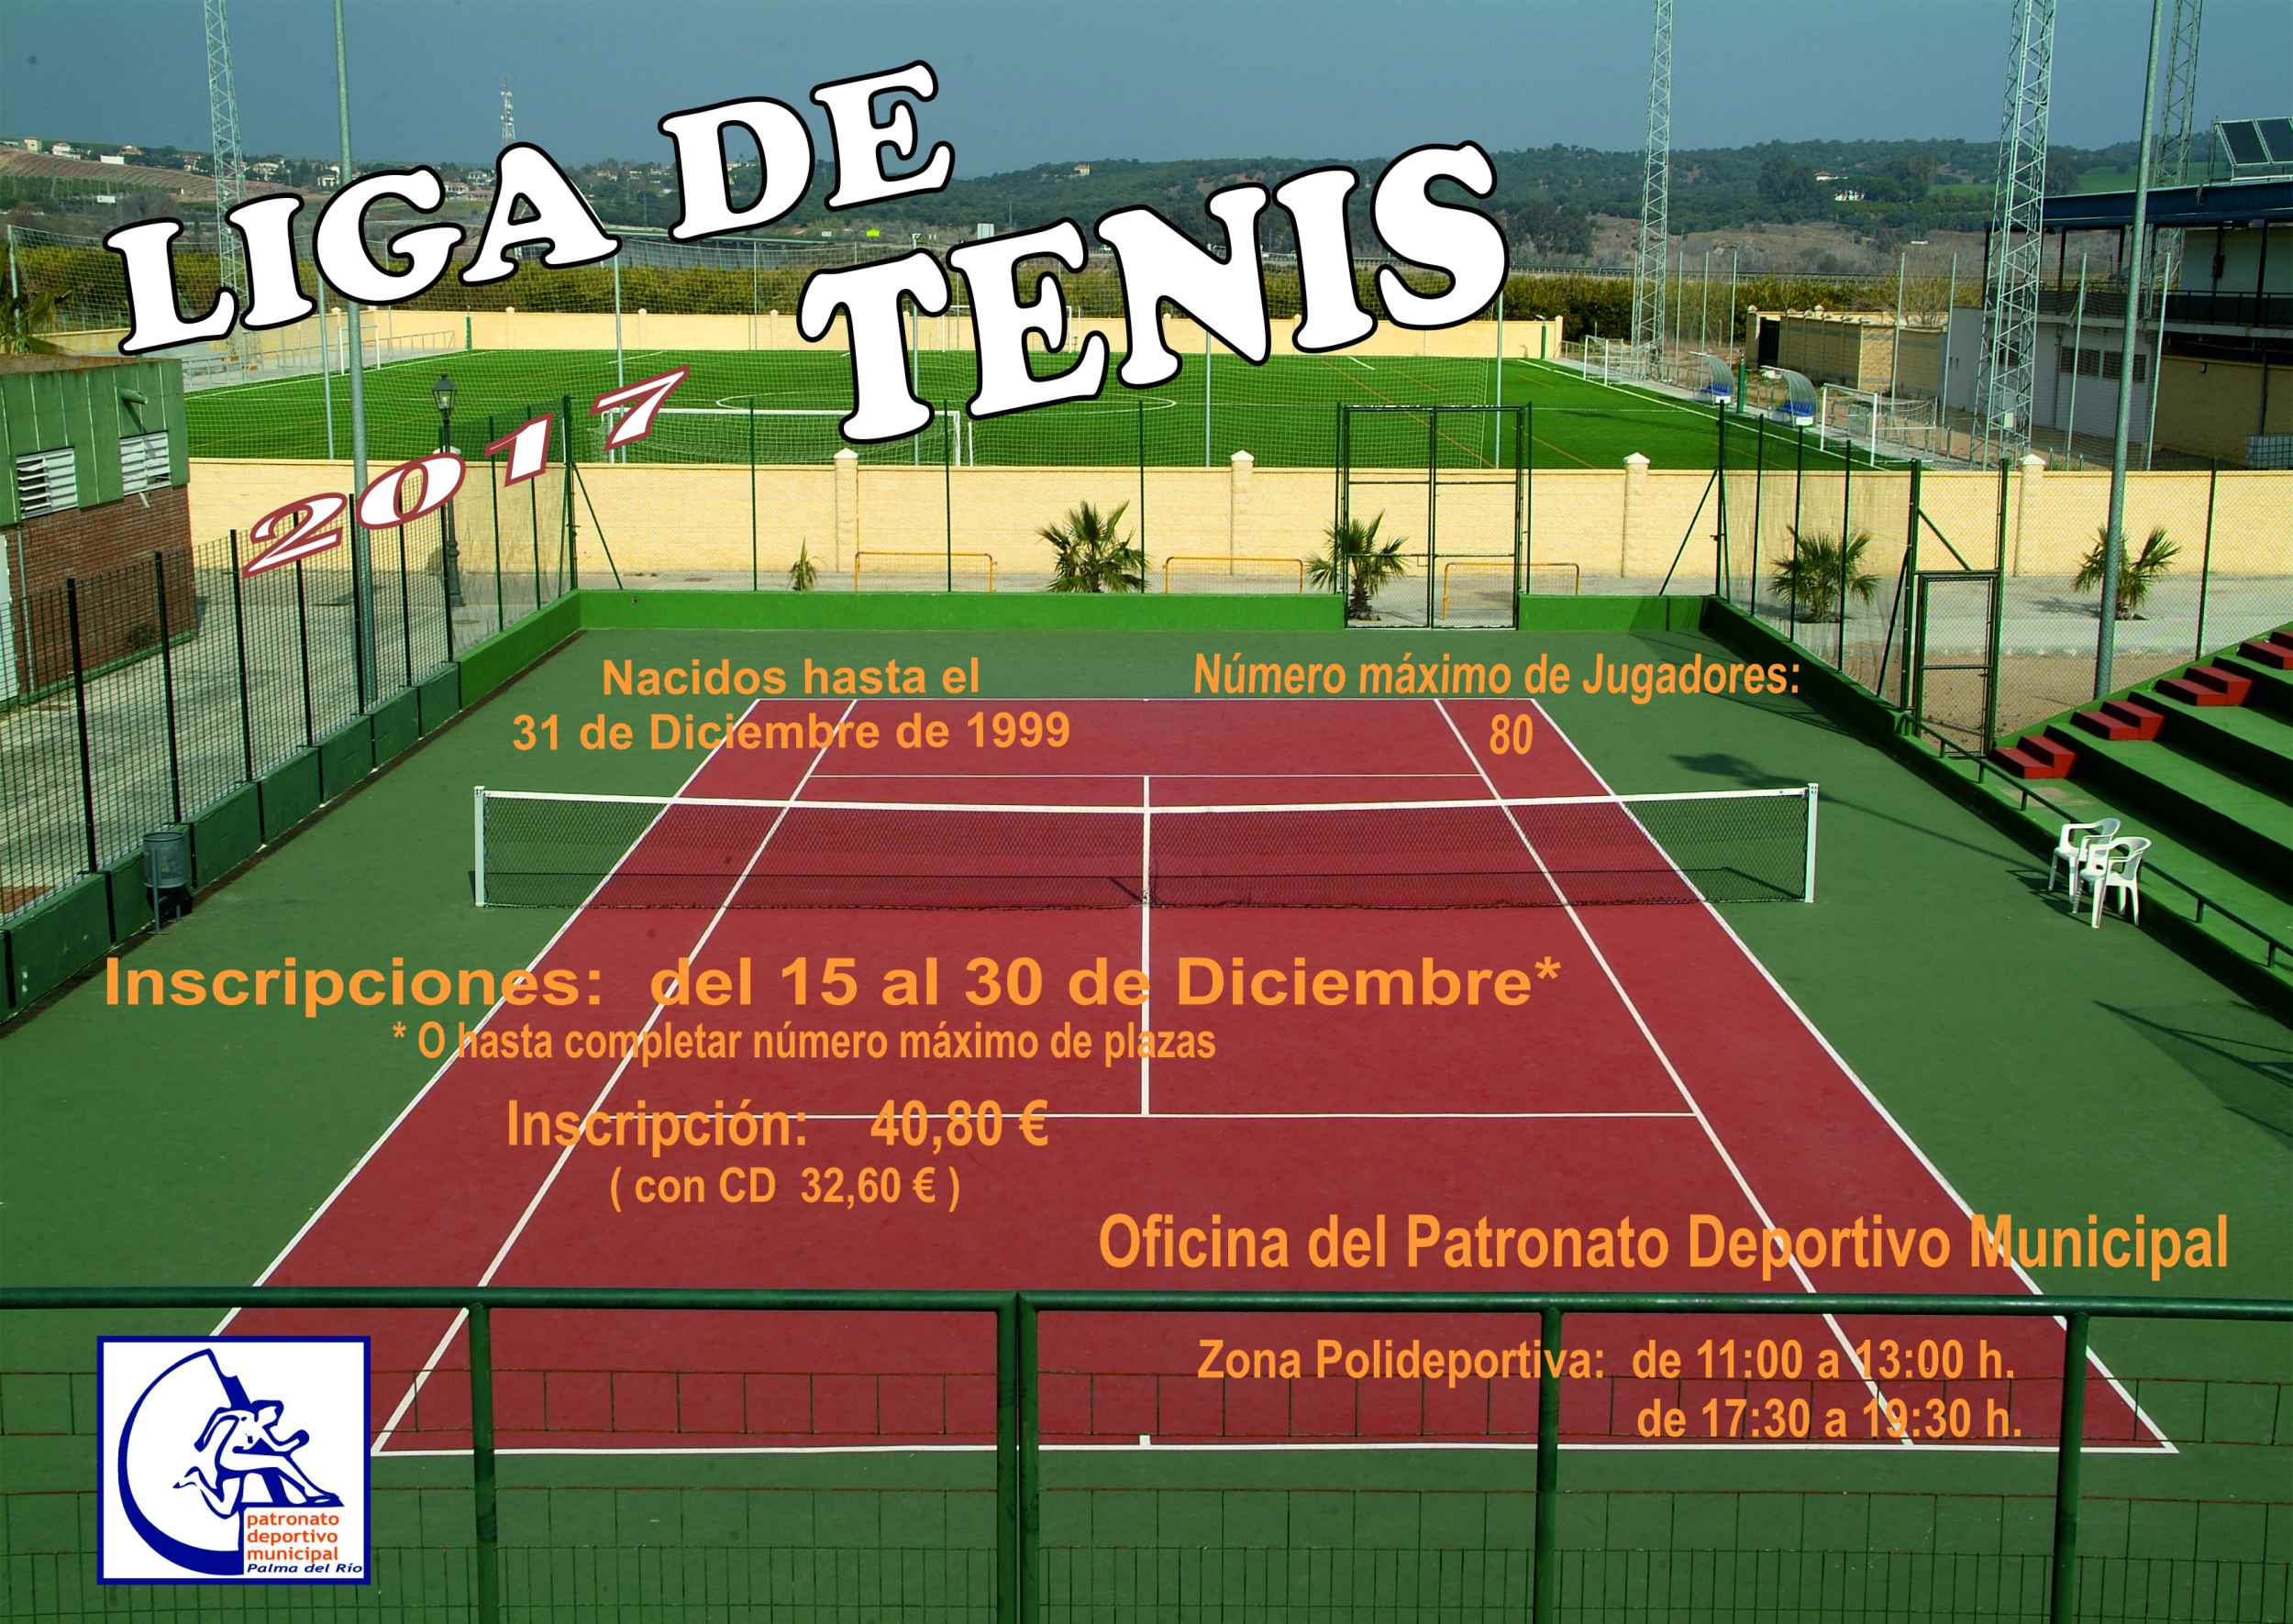 https://www.palmadelrio.es/sites/default/files/liga_de_tenis_2017_web.jpg